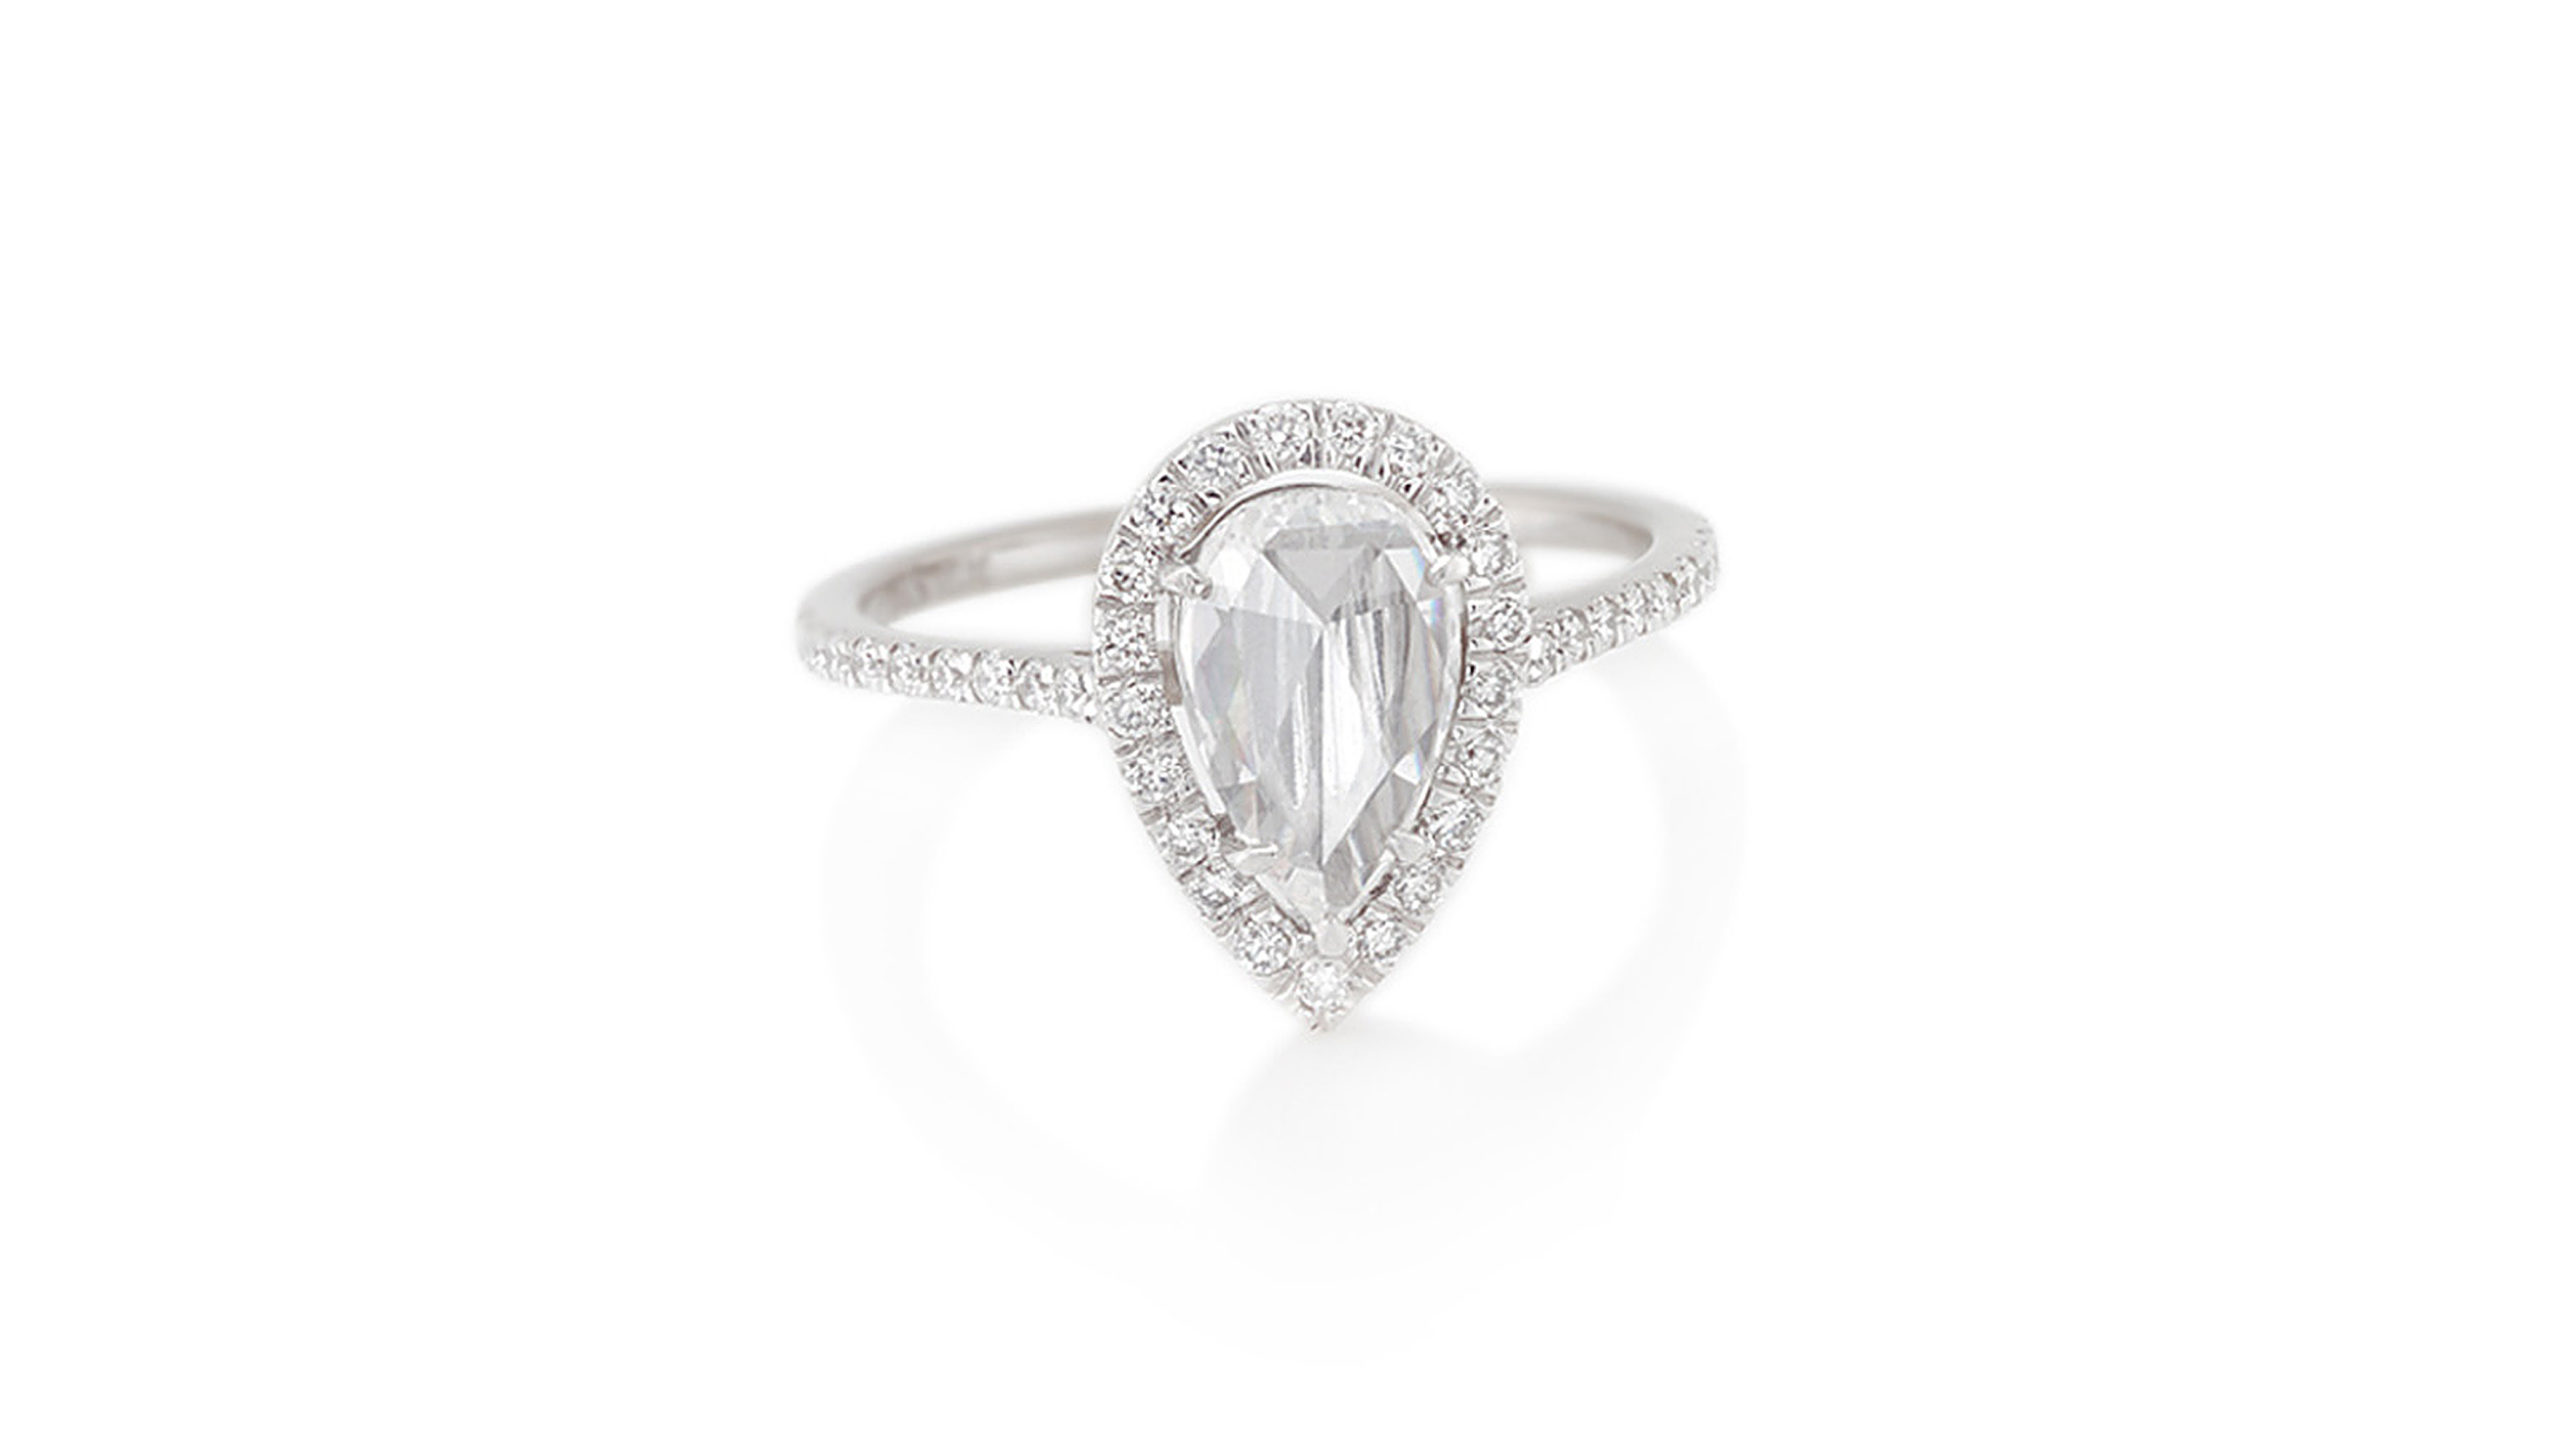 Rose Cut Diamond Halo Ring | A 0.90ct pear-shaped, rose cut fine white diamond, surrounded by a halo of 41 diamonds. Handcrafted in 18ct white gold